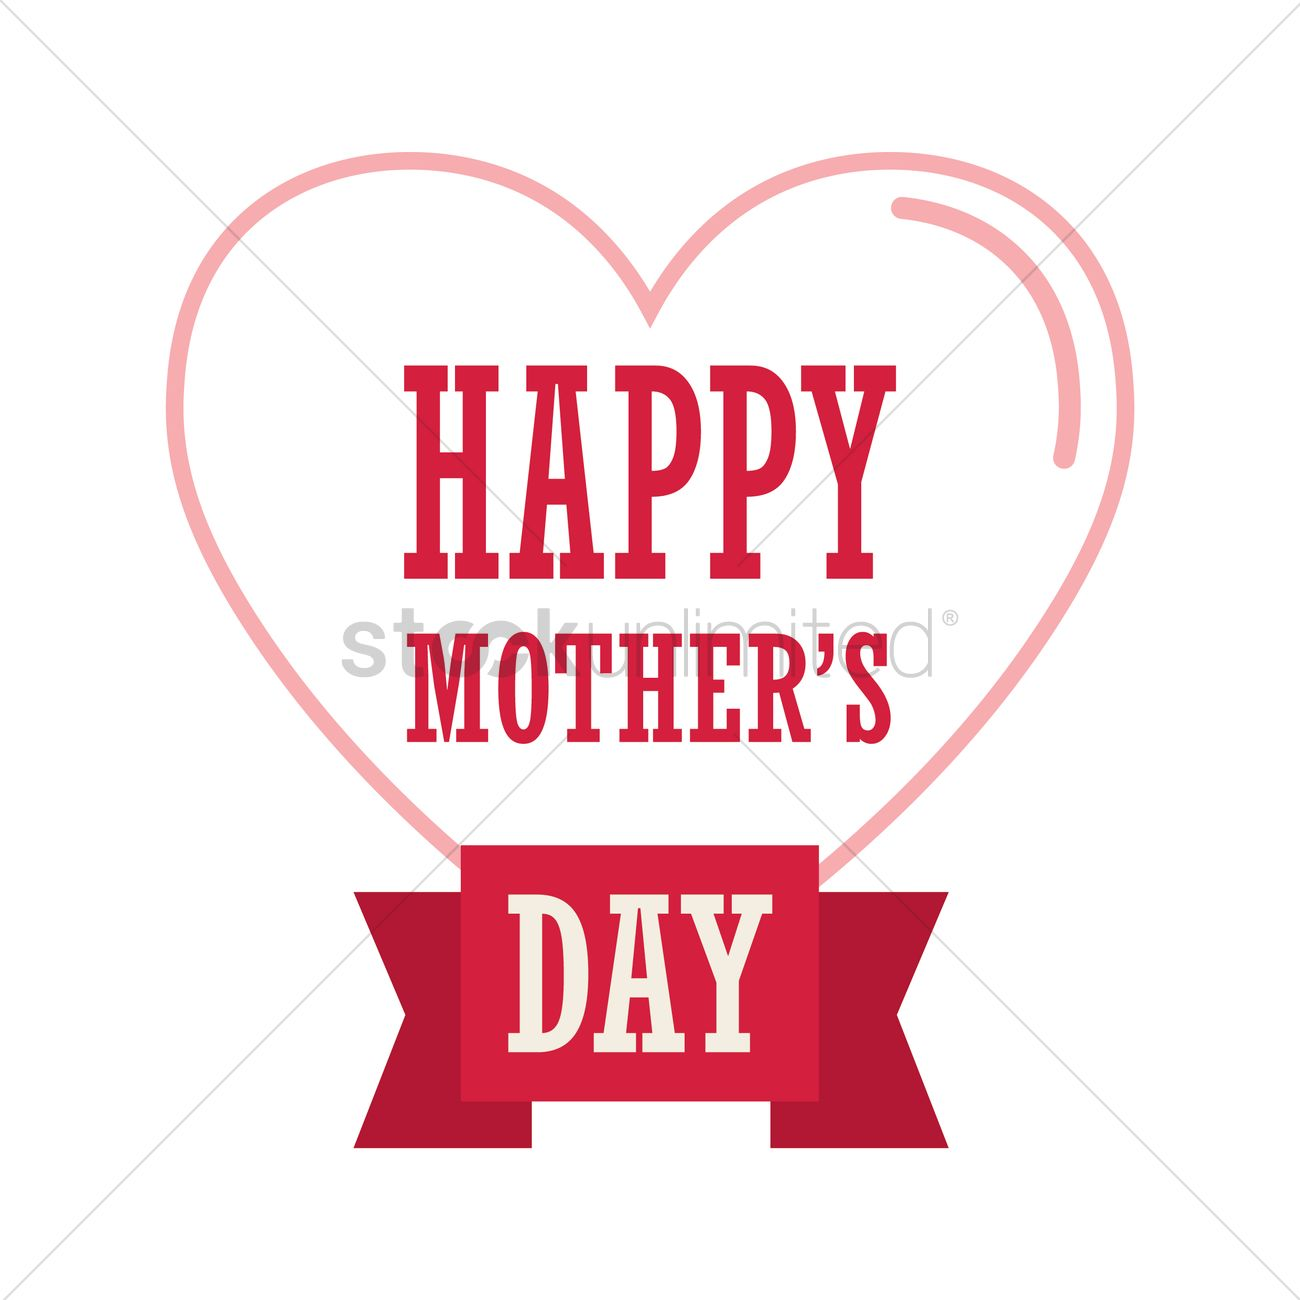 happy mothers day card with heart vector image 1808179